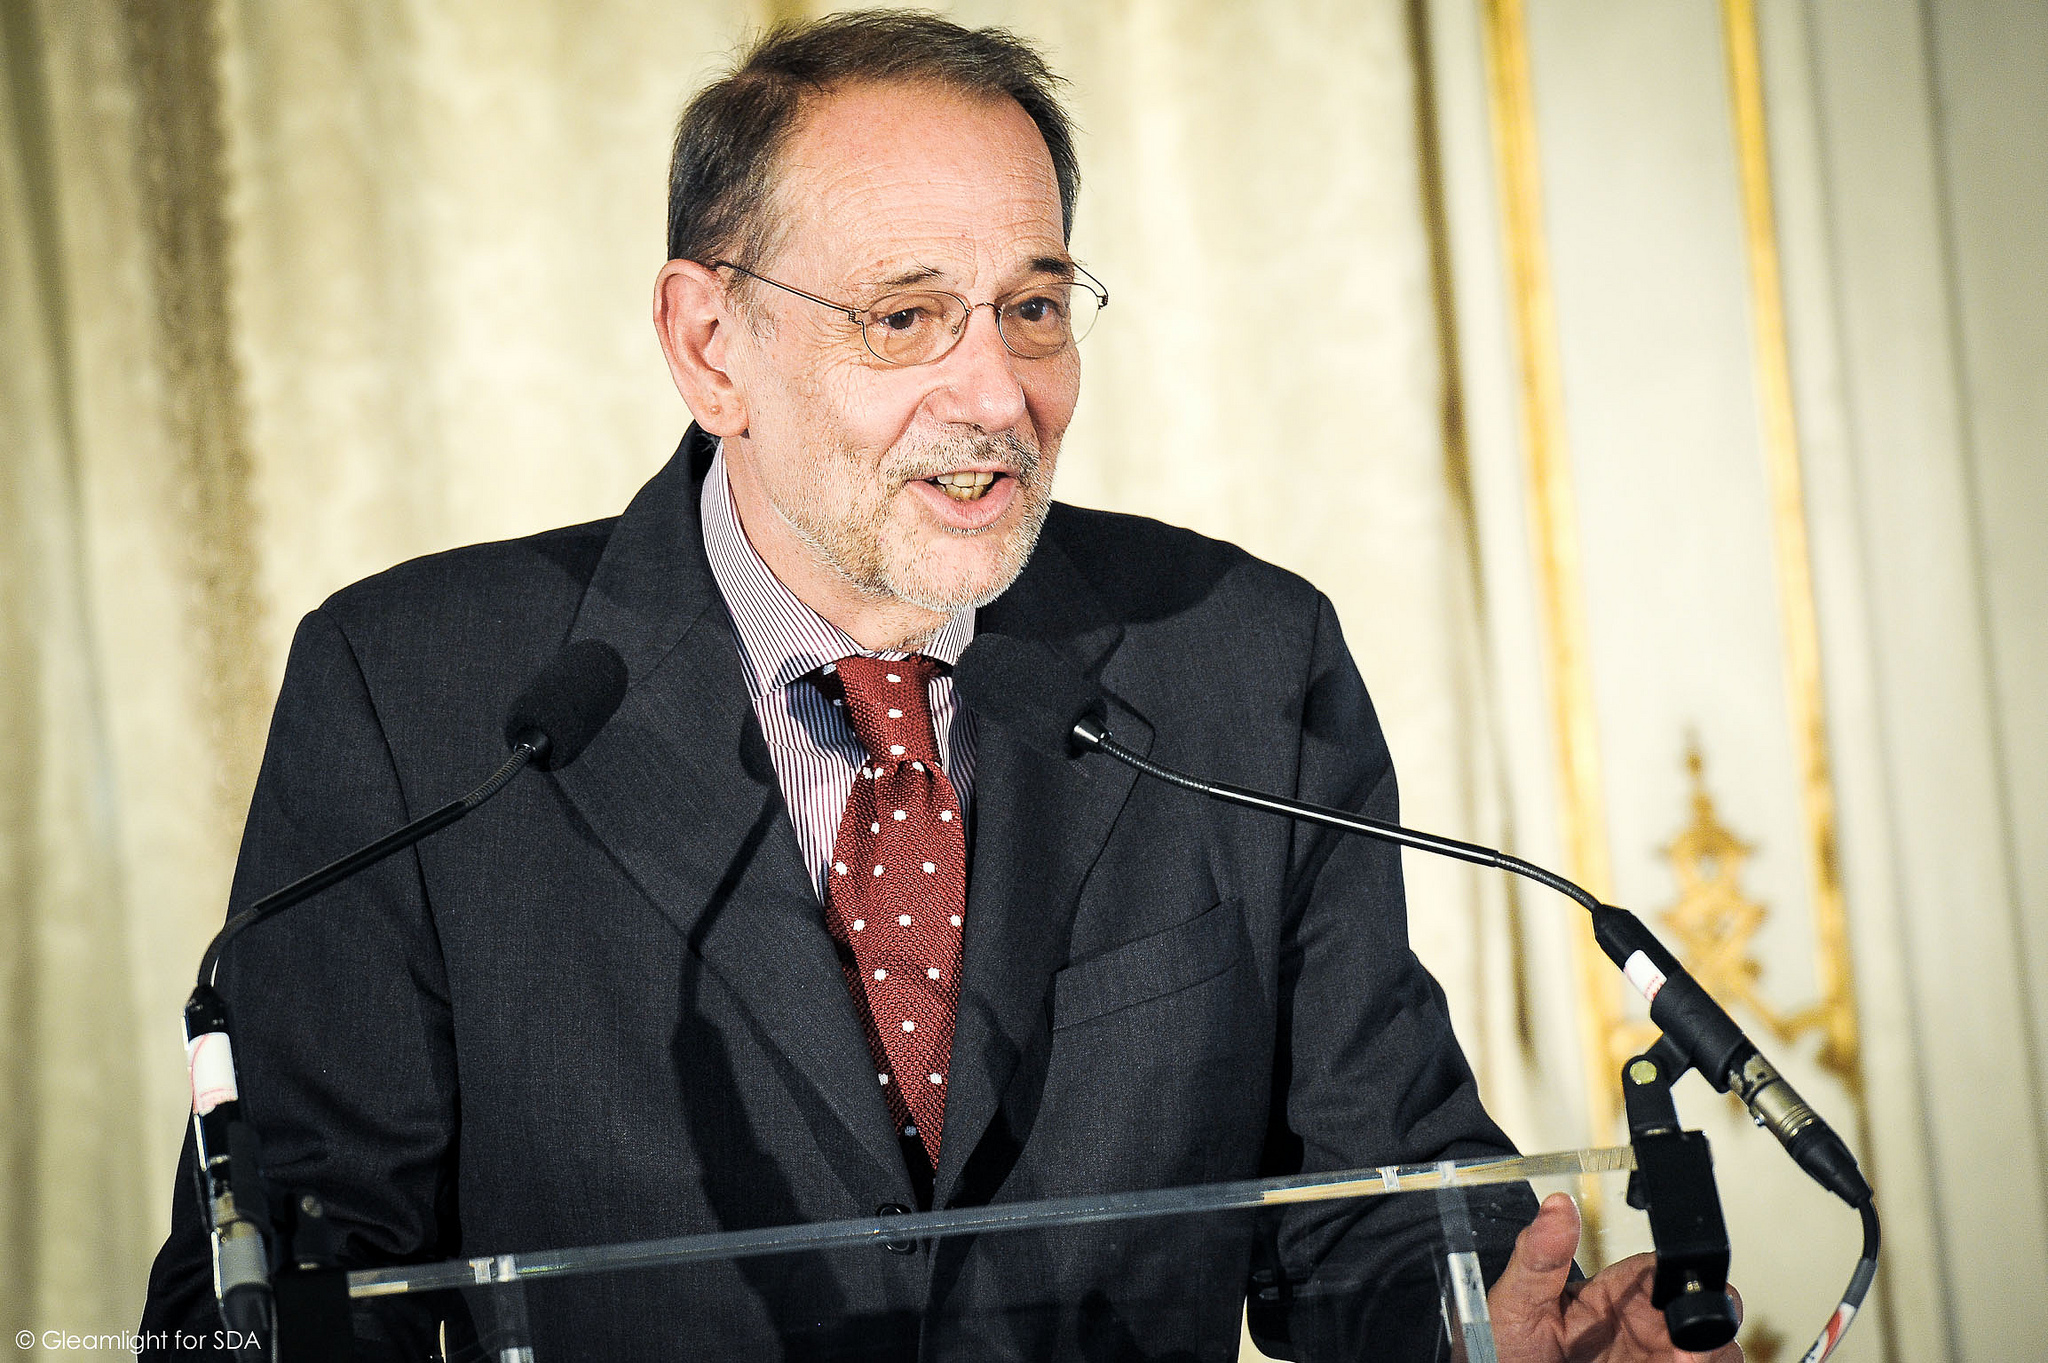 3-Politician and Spanish diplomat Javier Solana (CC. Security & Defence Agenda)